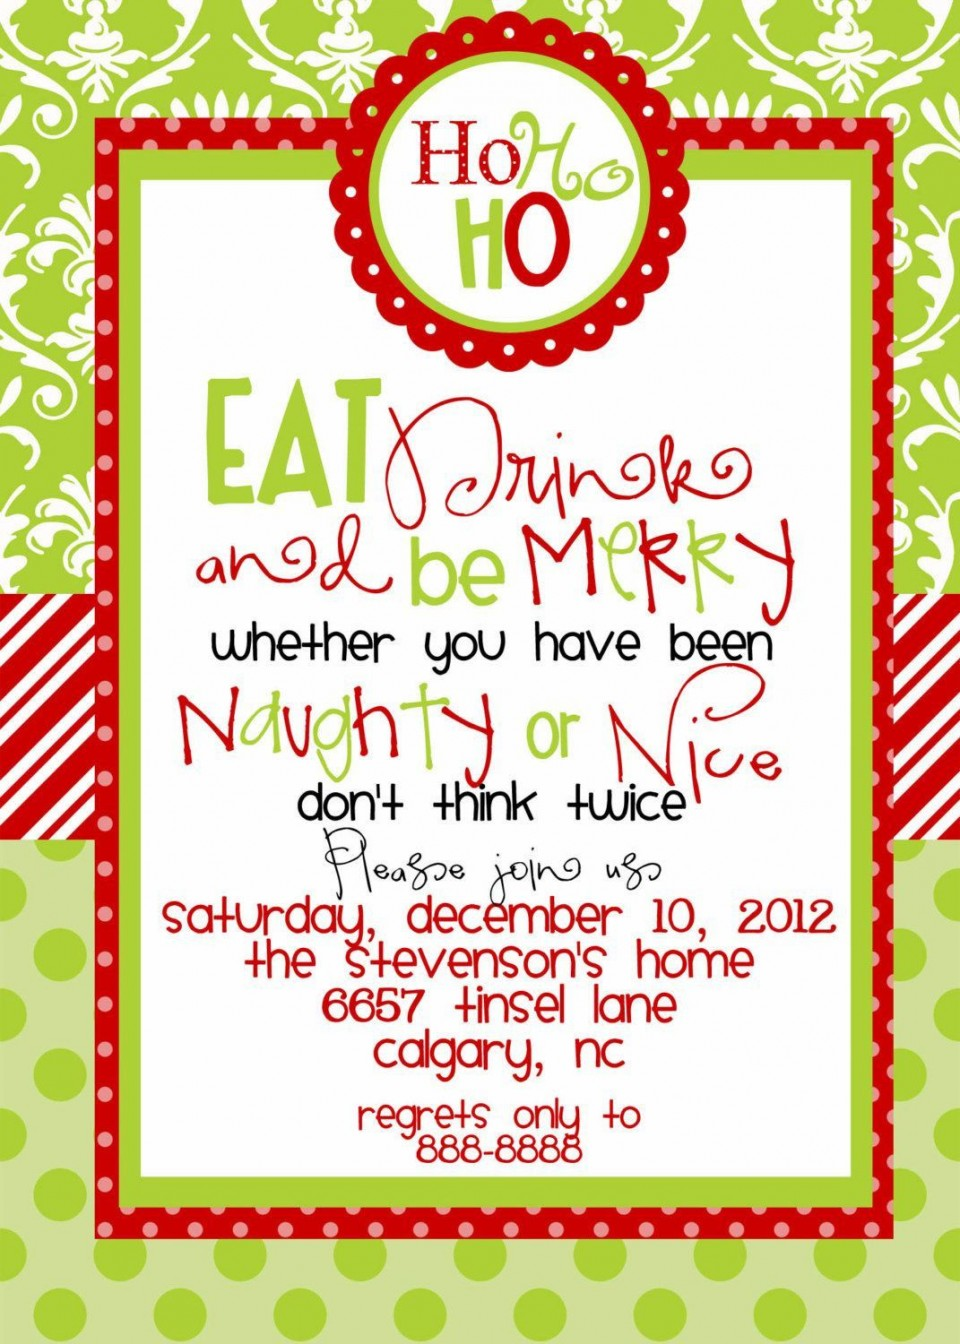 000 Unique Xma Party Invite Template Free Concept  Holiday Invitation Word Download Christma960